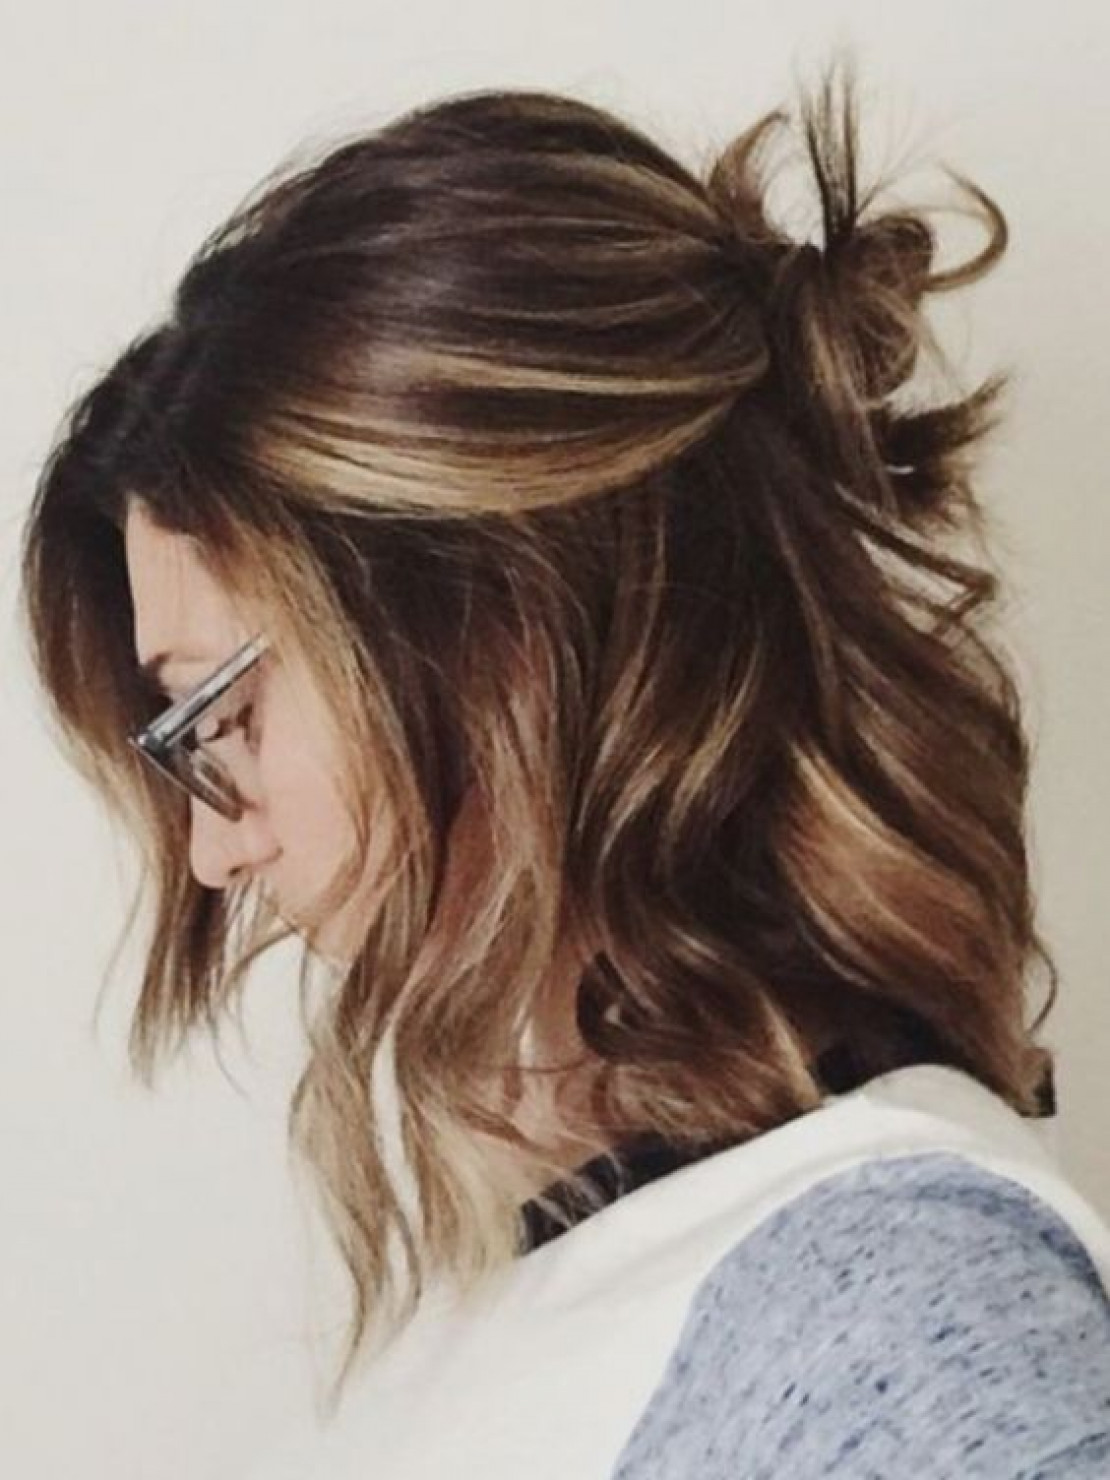 20 Simple and Easy Hairstyles for Your Daily Look